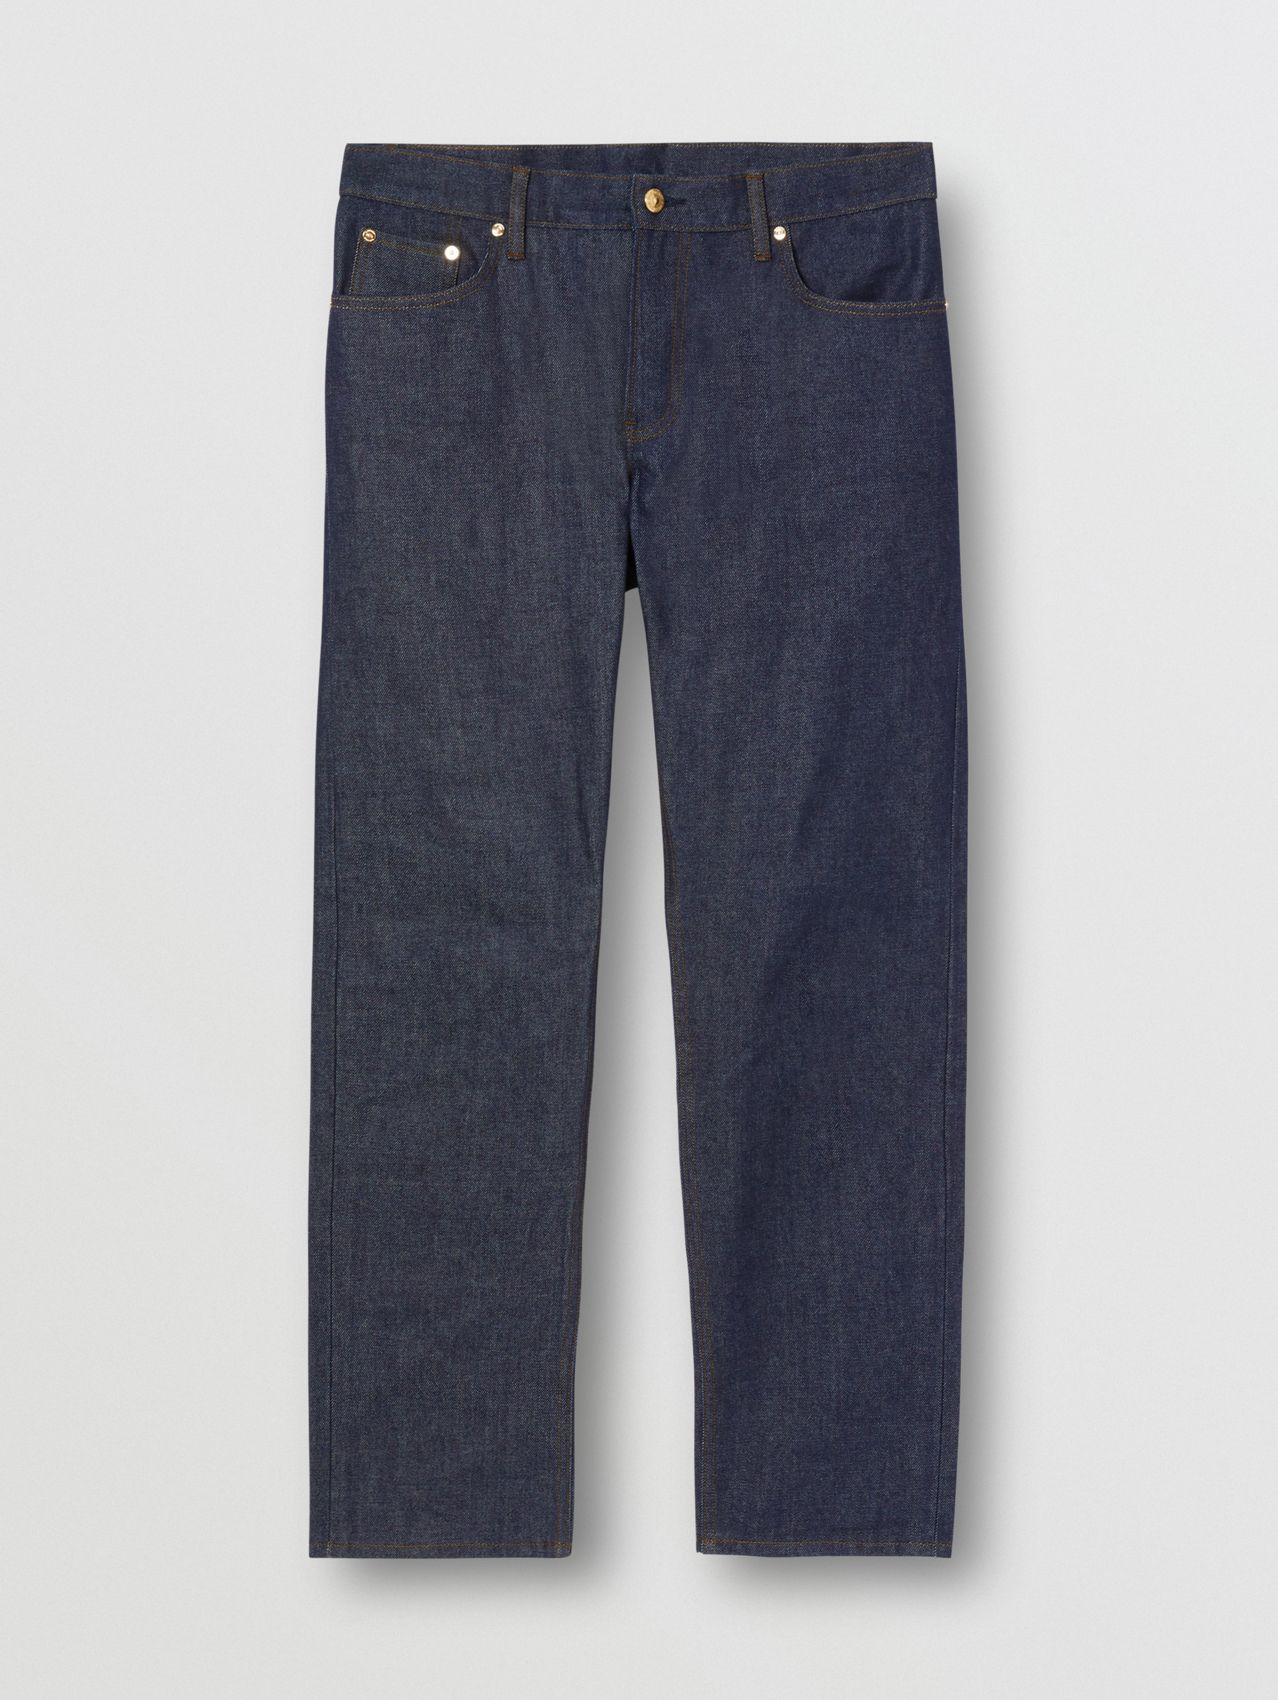 Straight Fit Raw Denim Jeans in Indigo